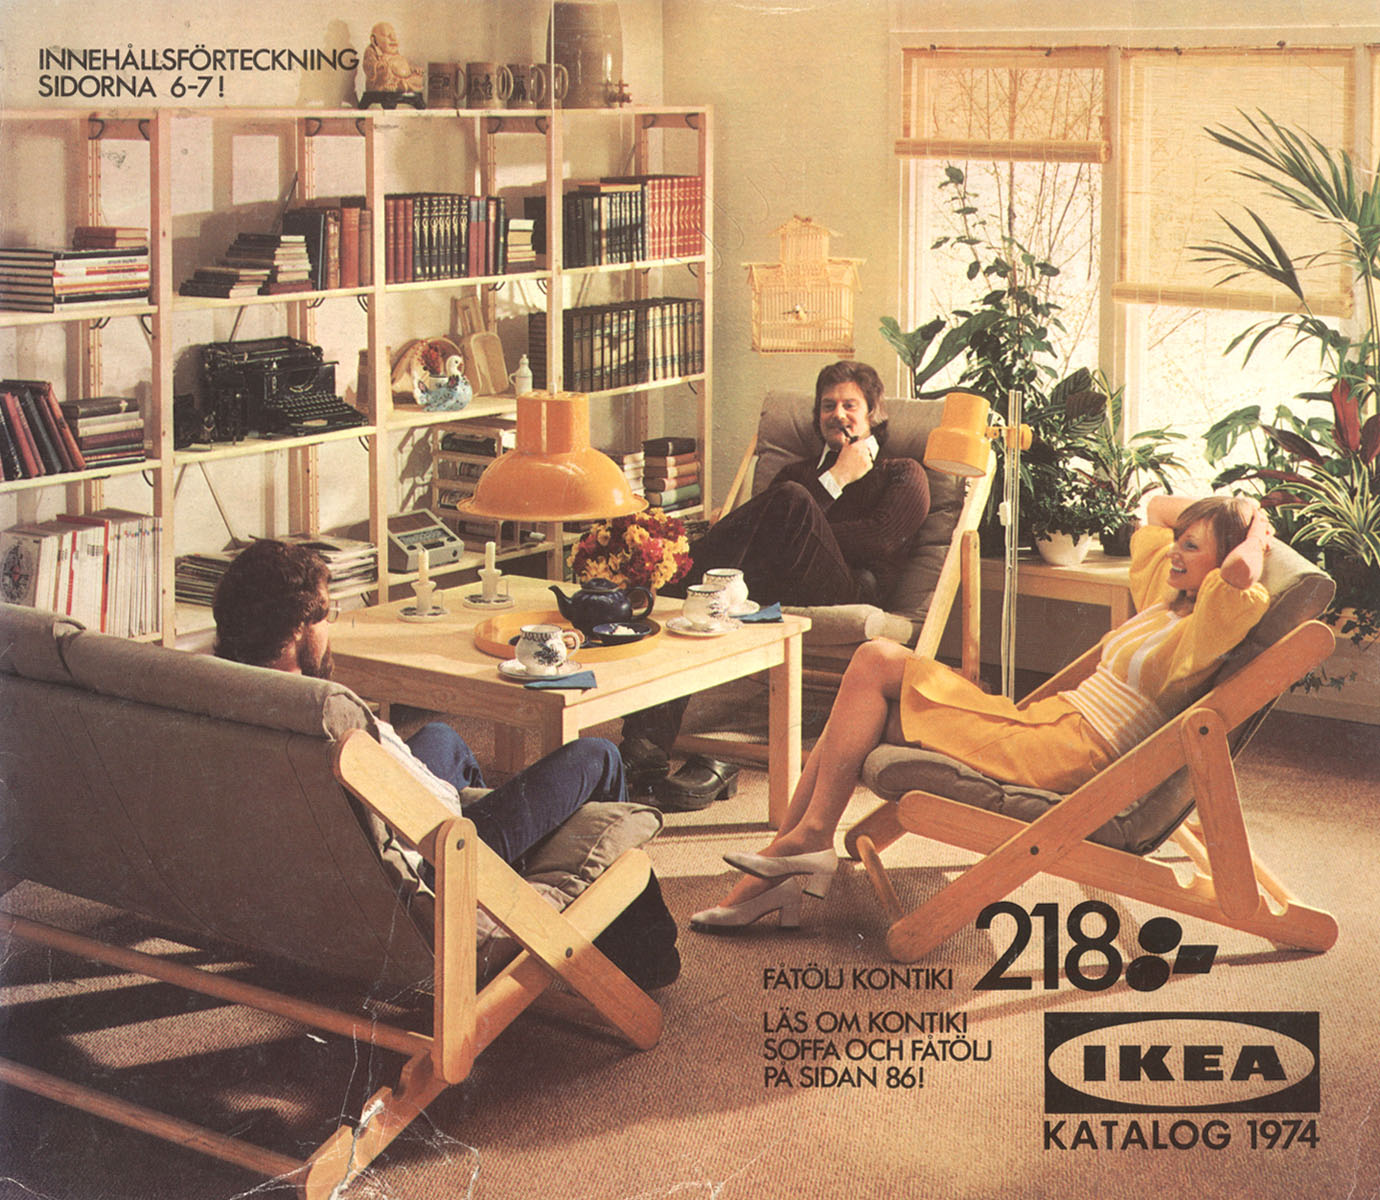 Ikea 1974 Catalog Interior Design Ideas